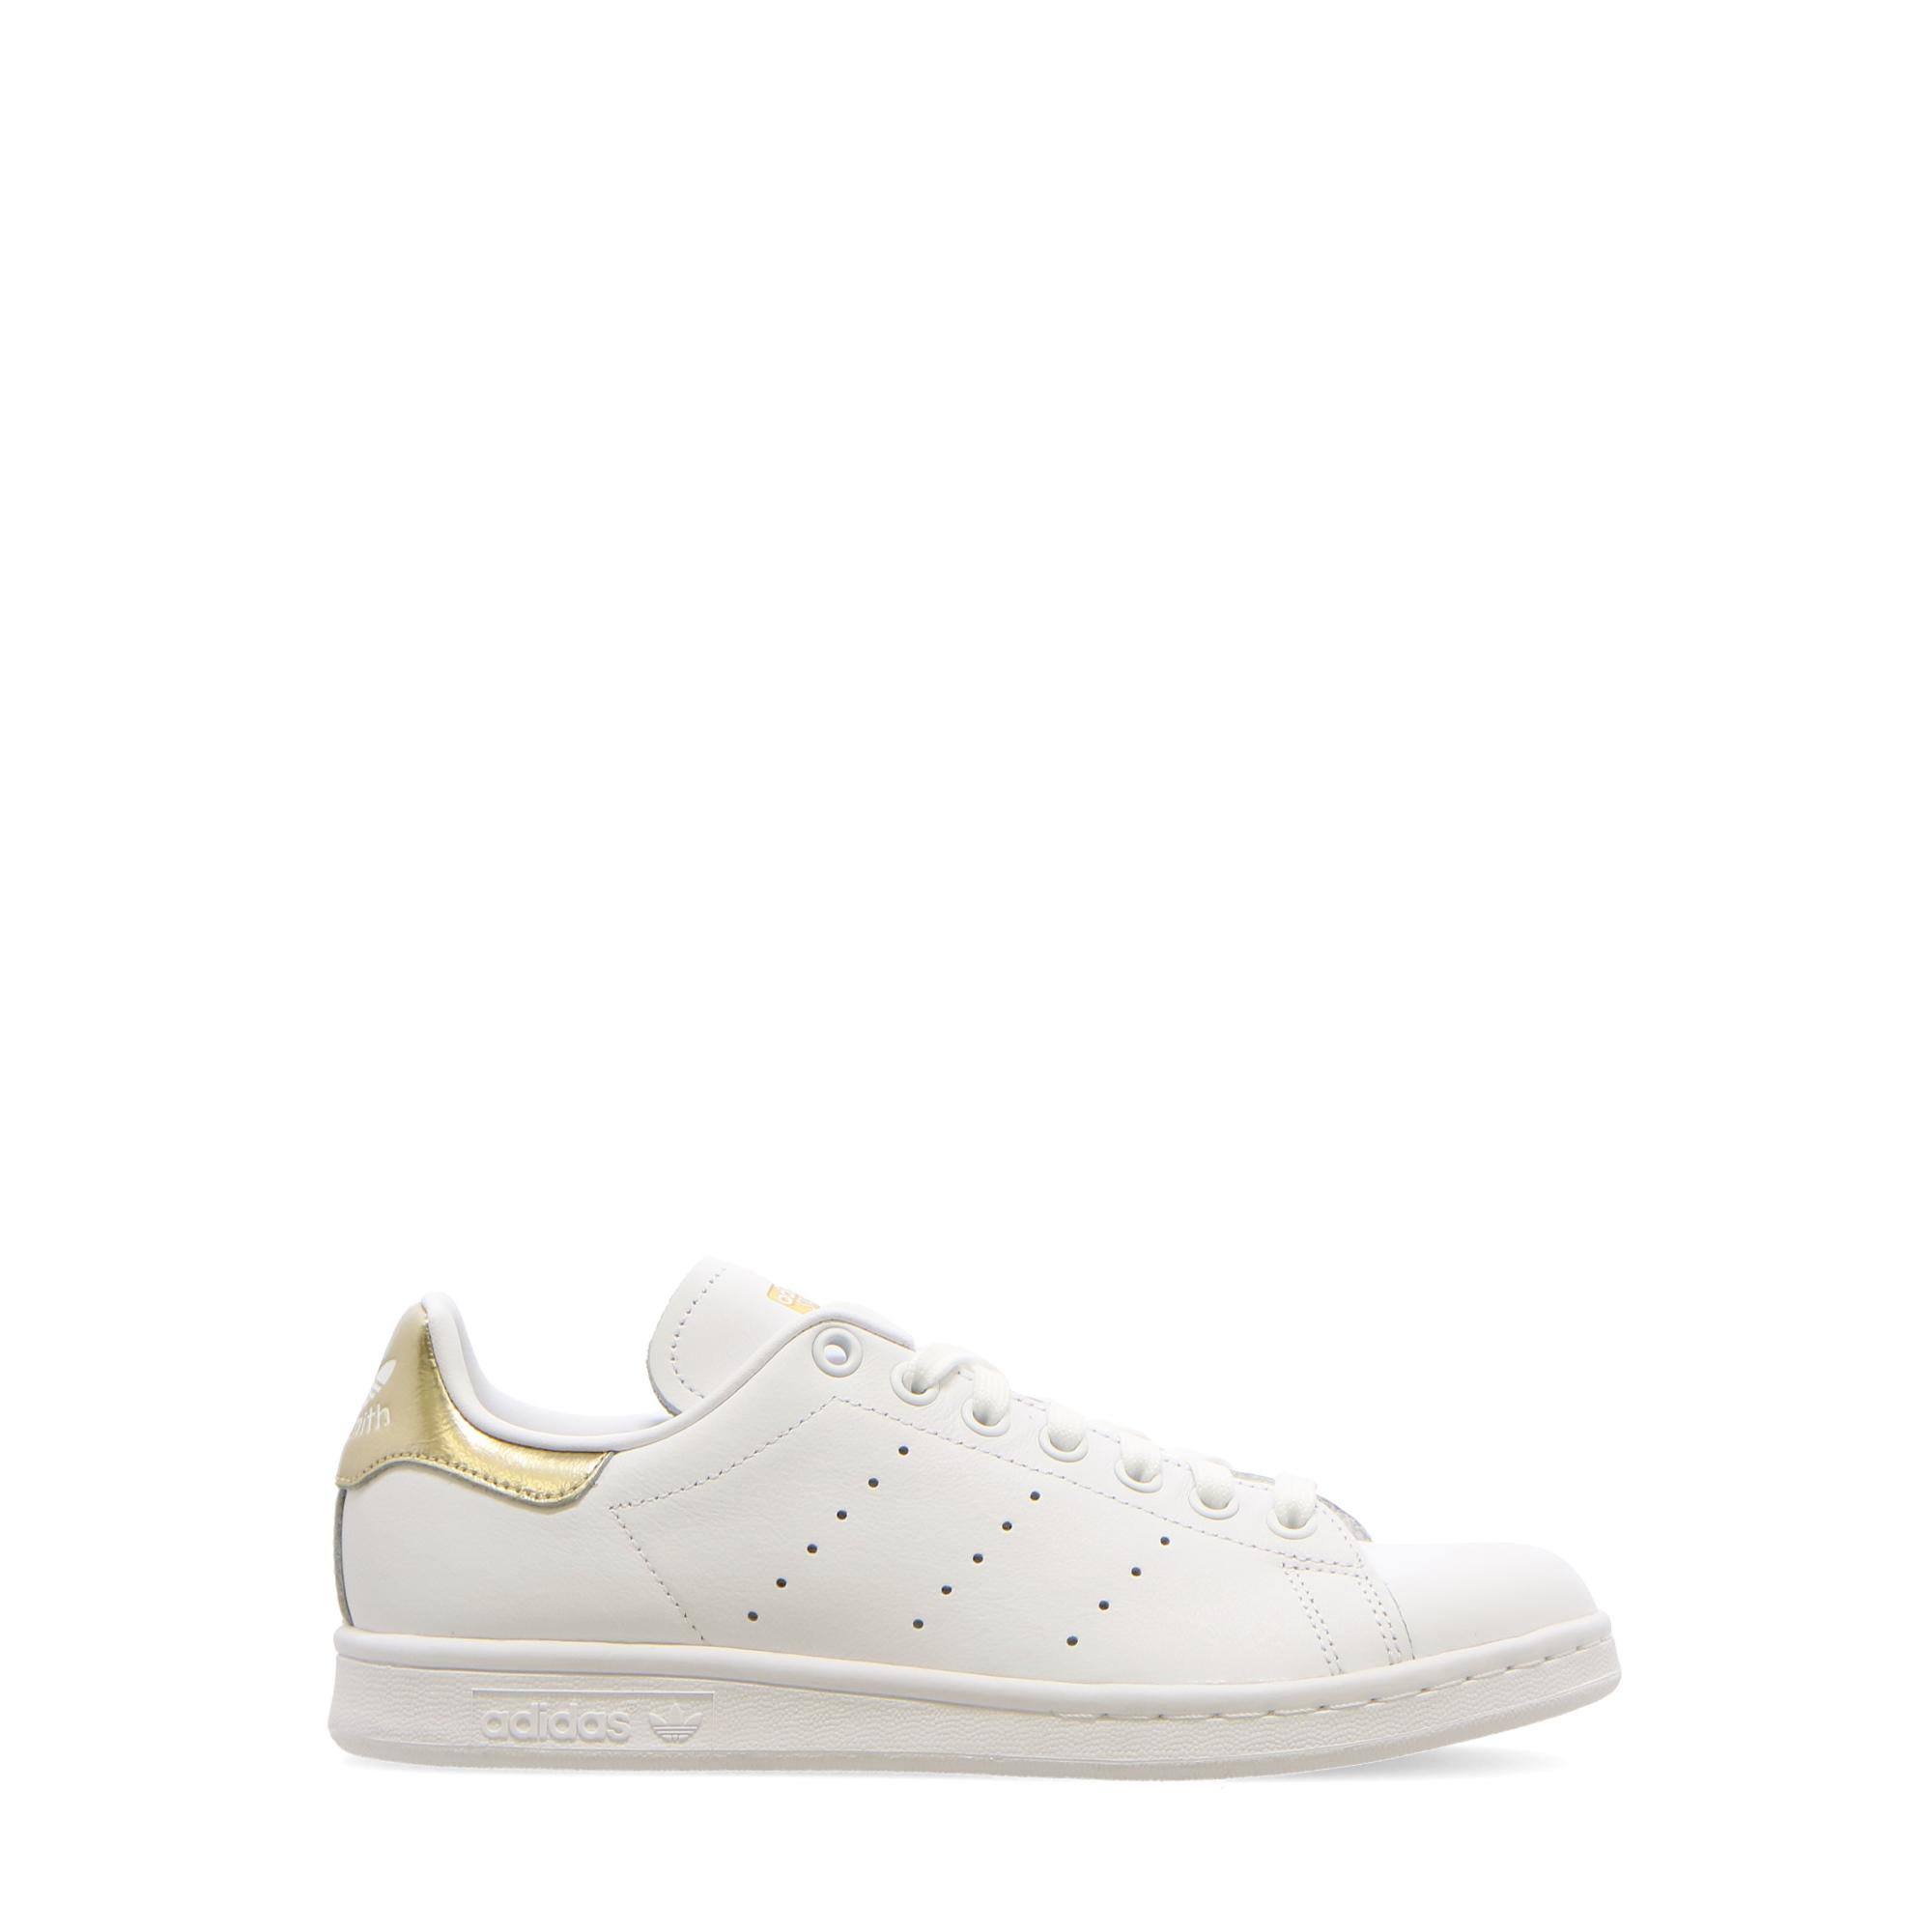 Adidas Stan Smith W White gold white